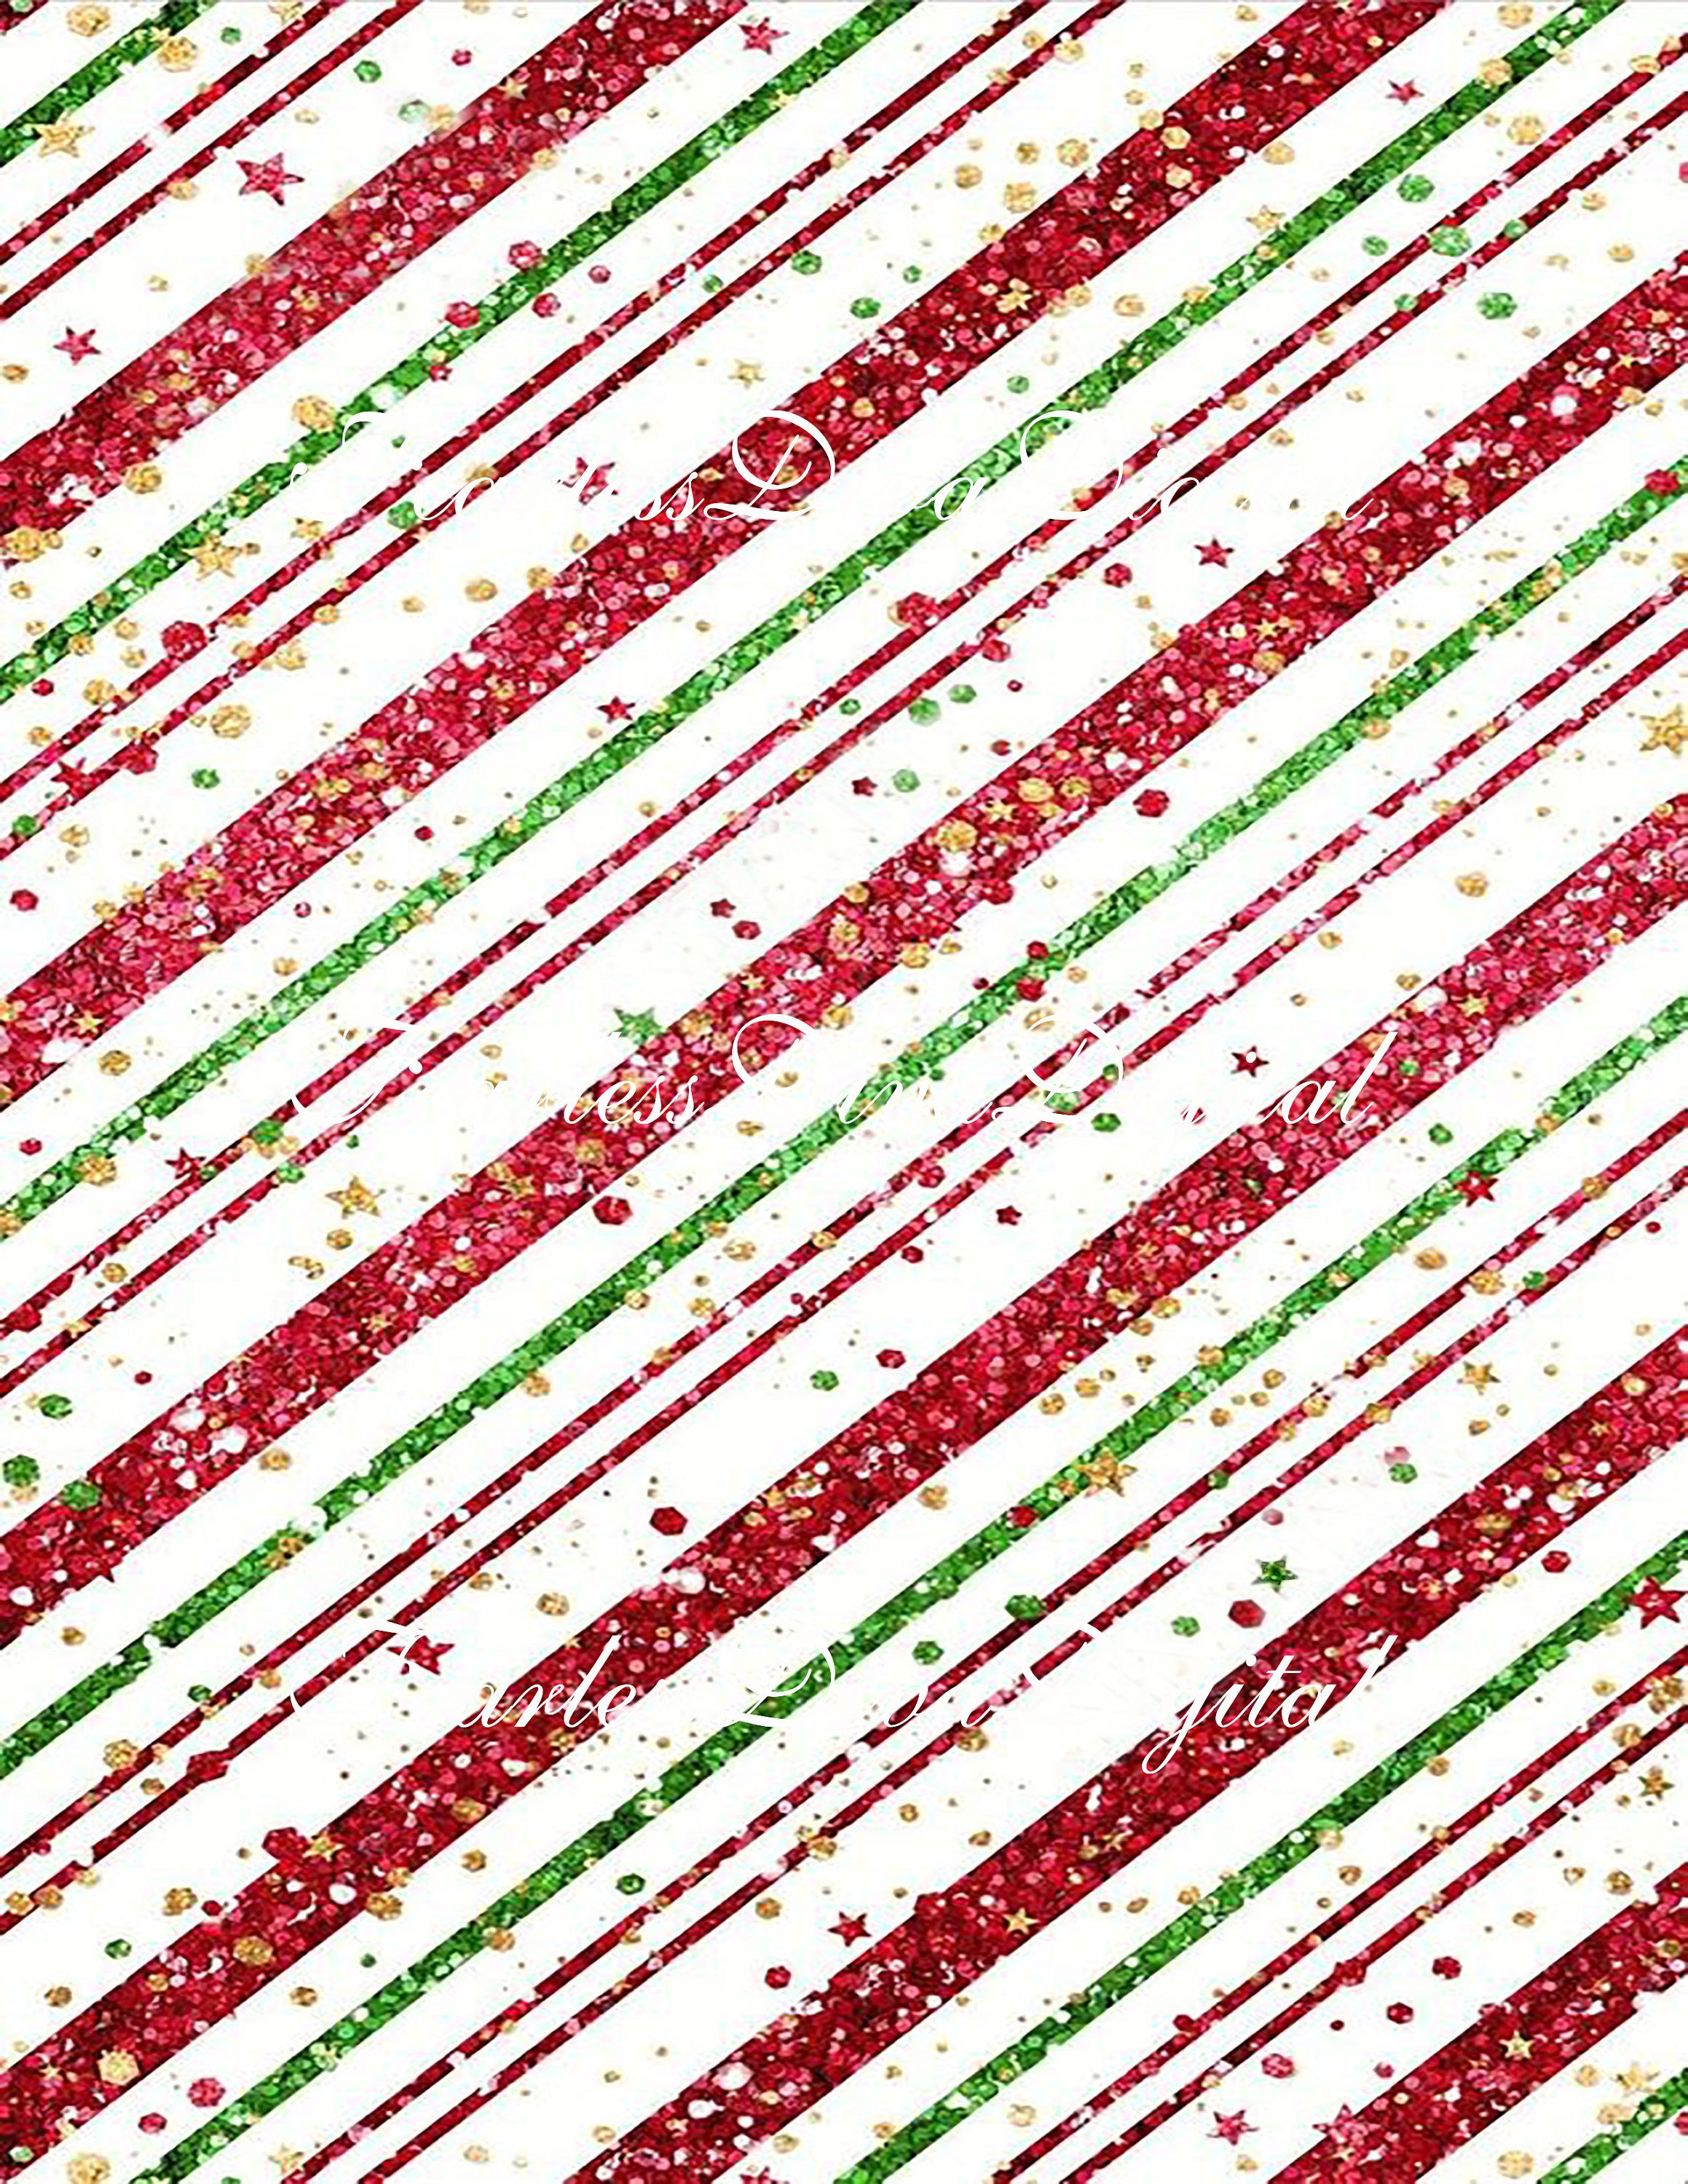 Digital Glittery Striped Christmas Scrapbook Paper Instant Etsy Wallpaper Iphone Christmas Christmas Phone Wallpaper Holiday Iphone Wallpaper